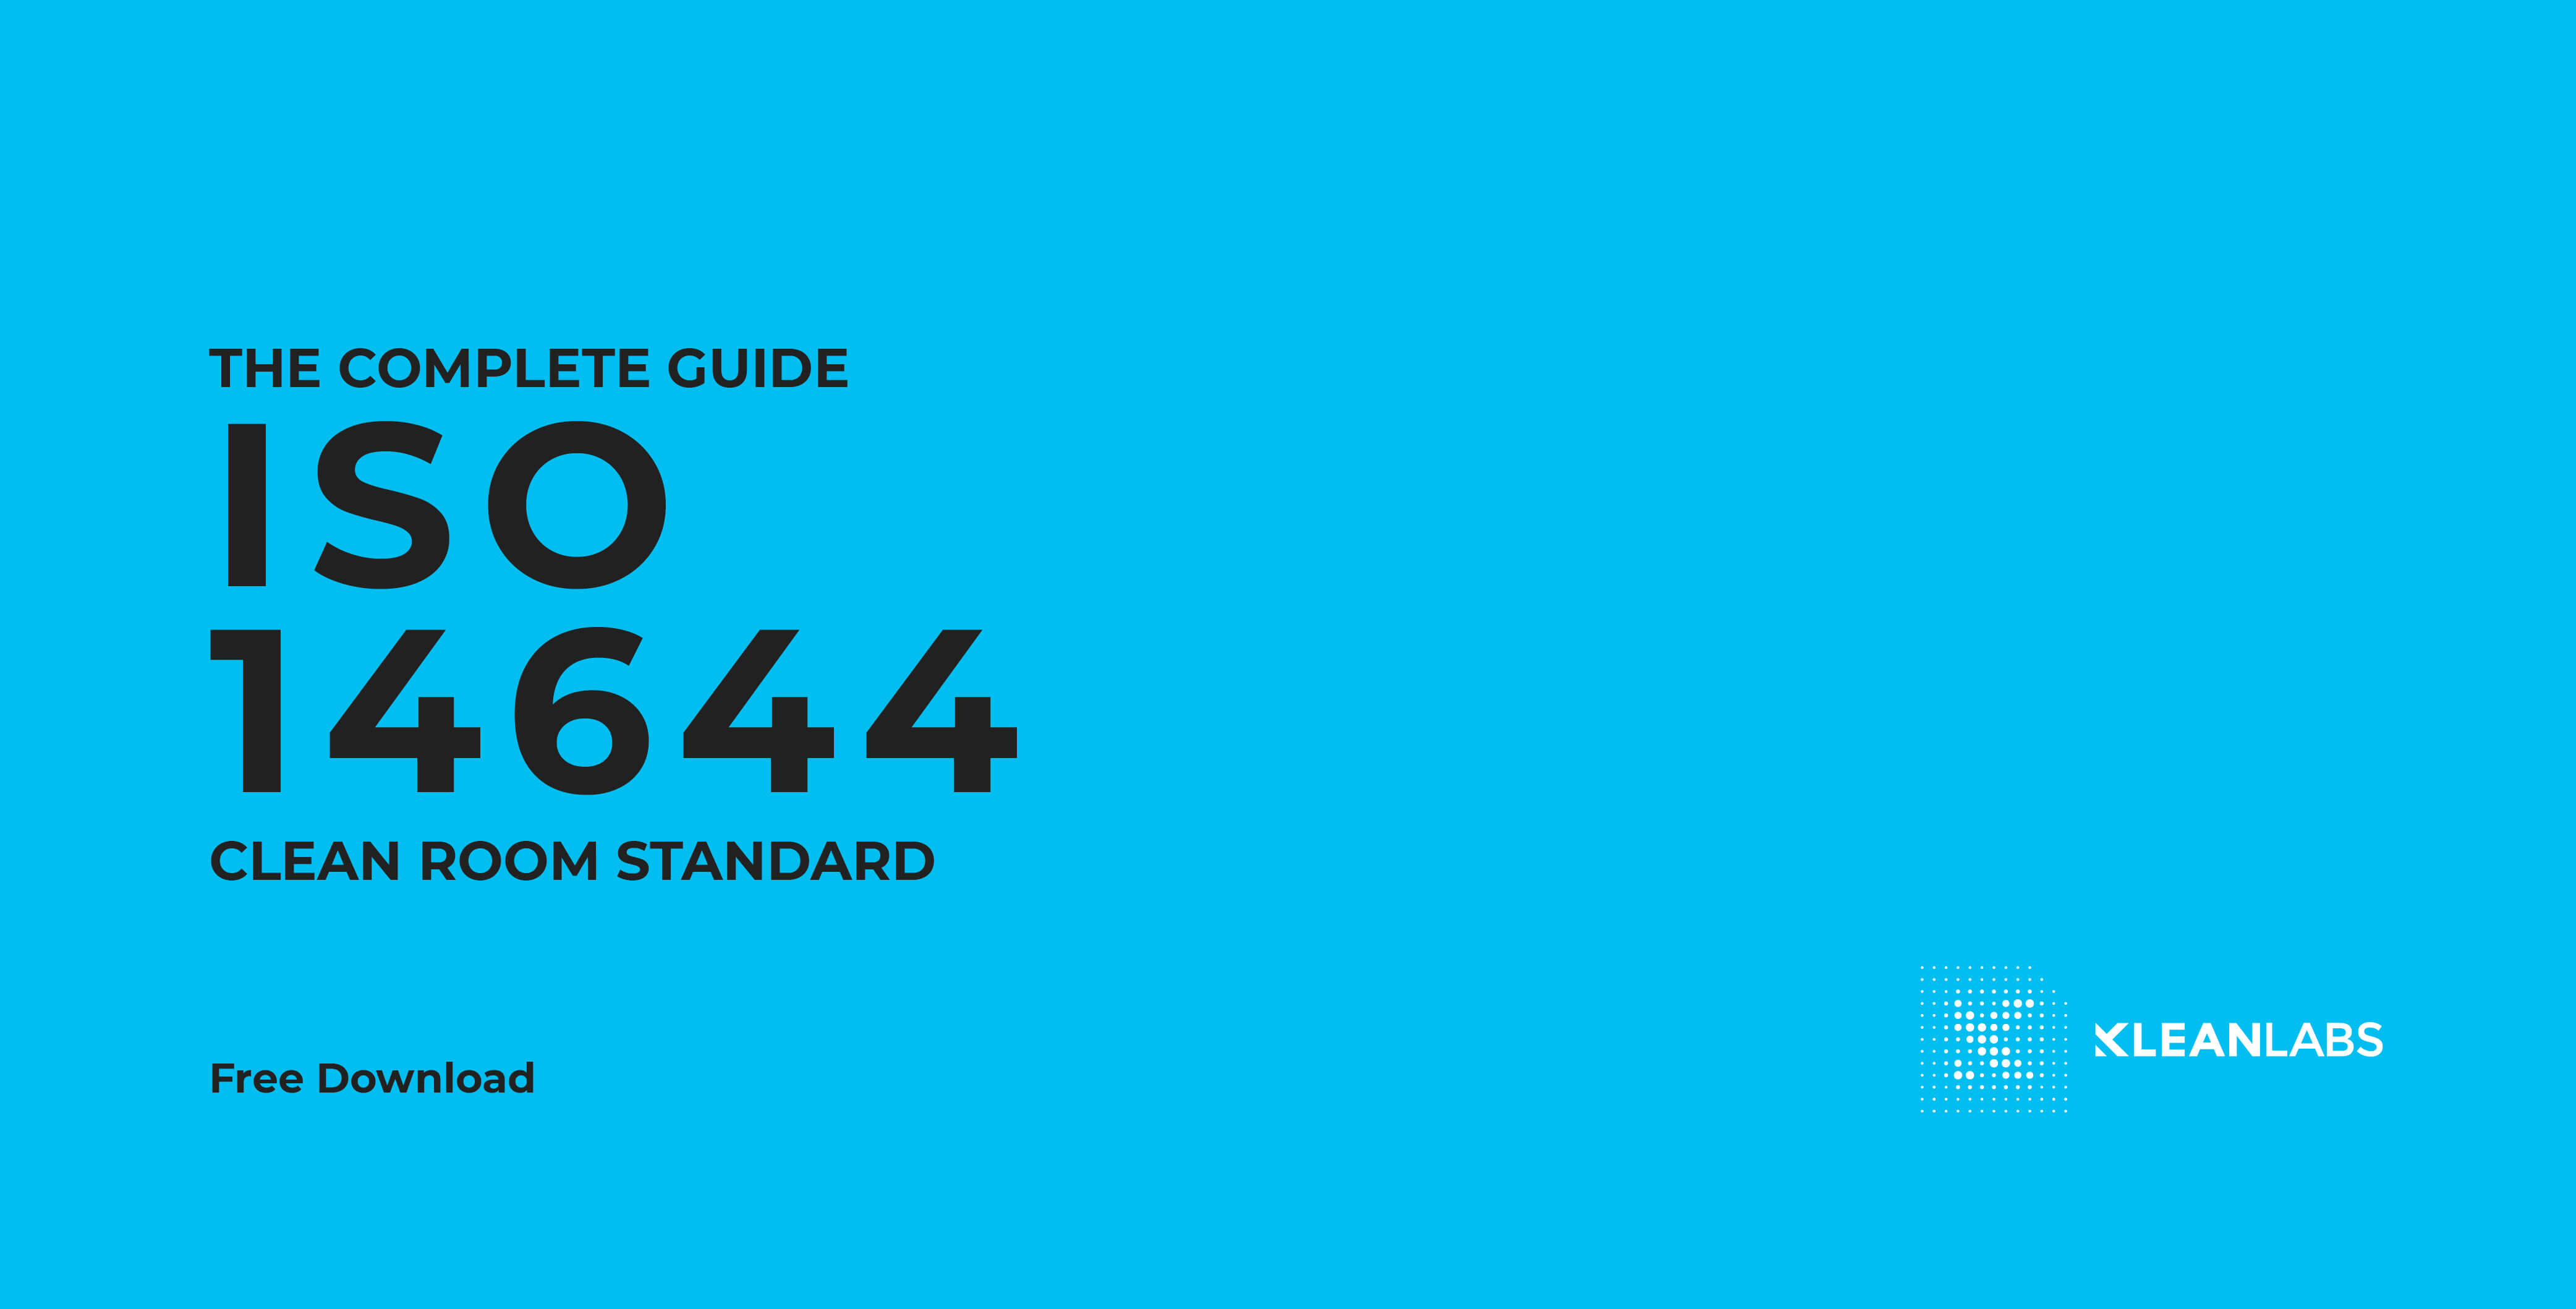 Free downloadable pdf on the ISO14644-1 standard